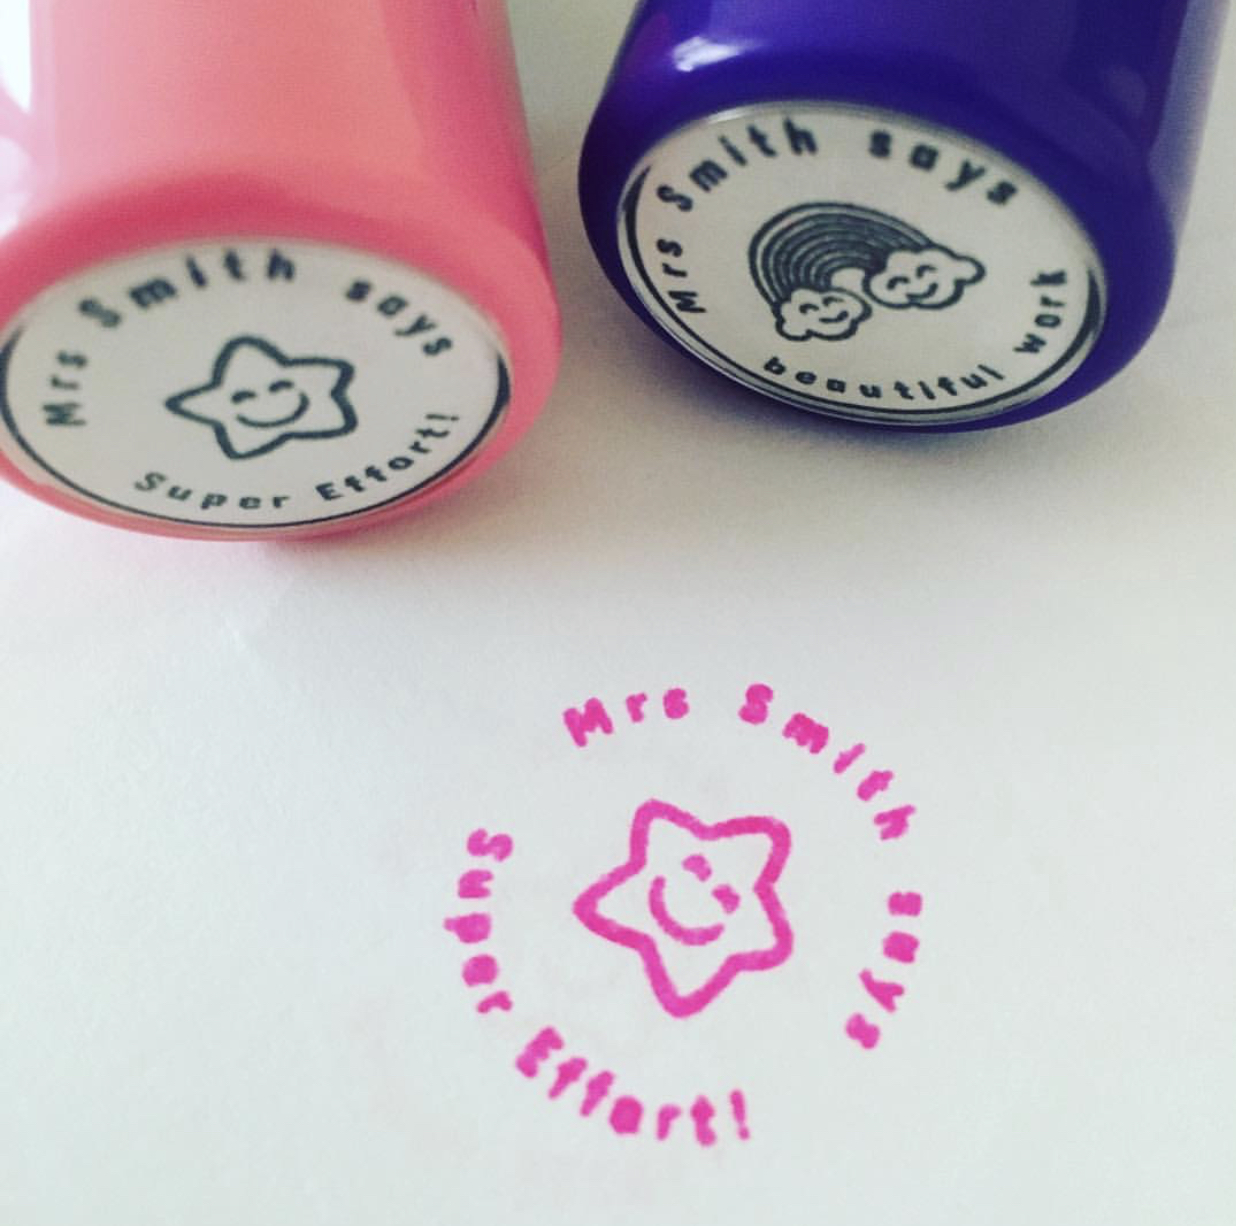 Personalised stamps from @misshoneyteachers